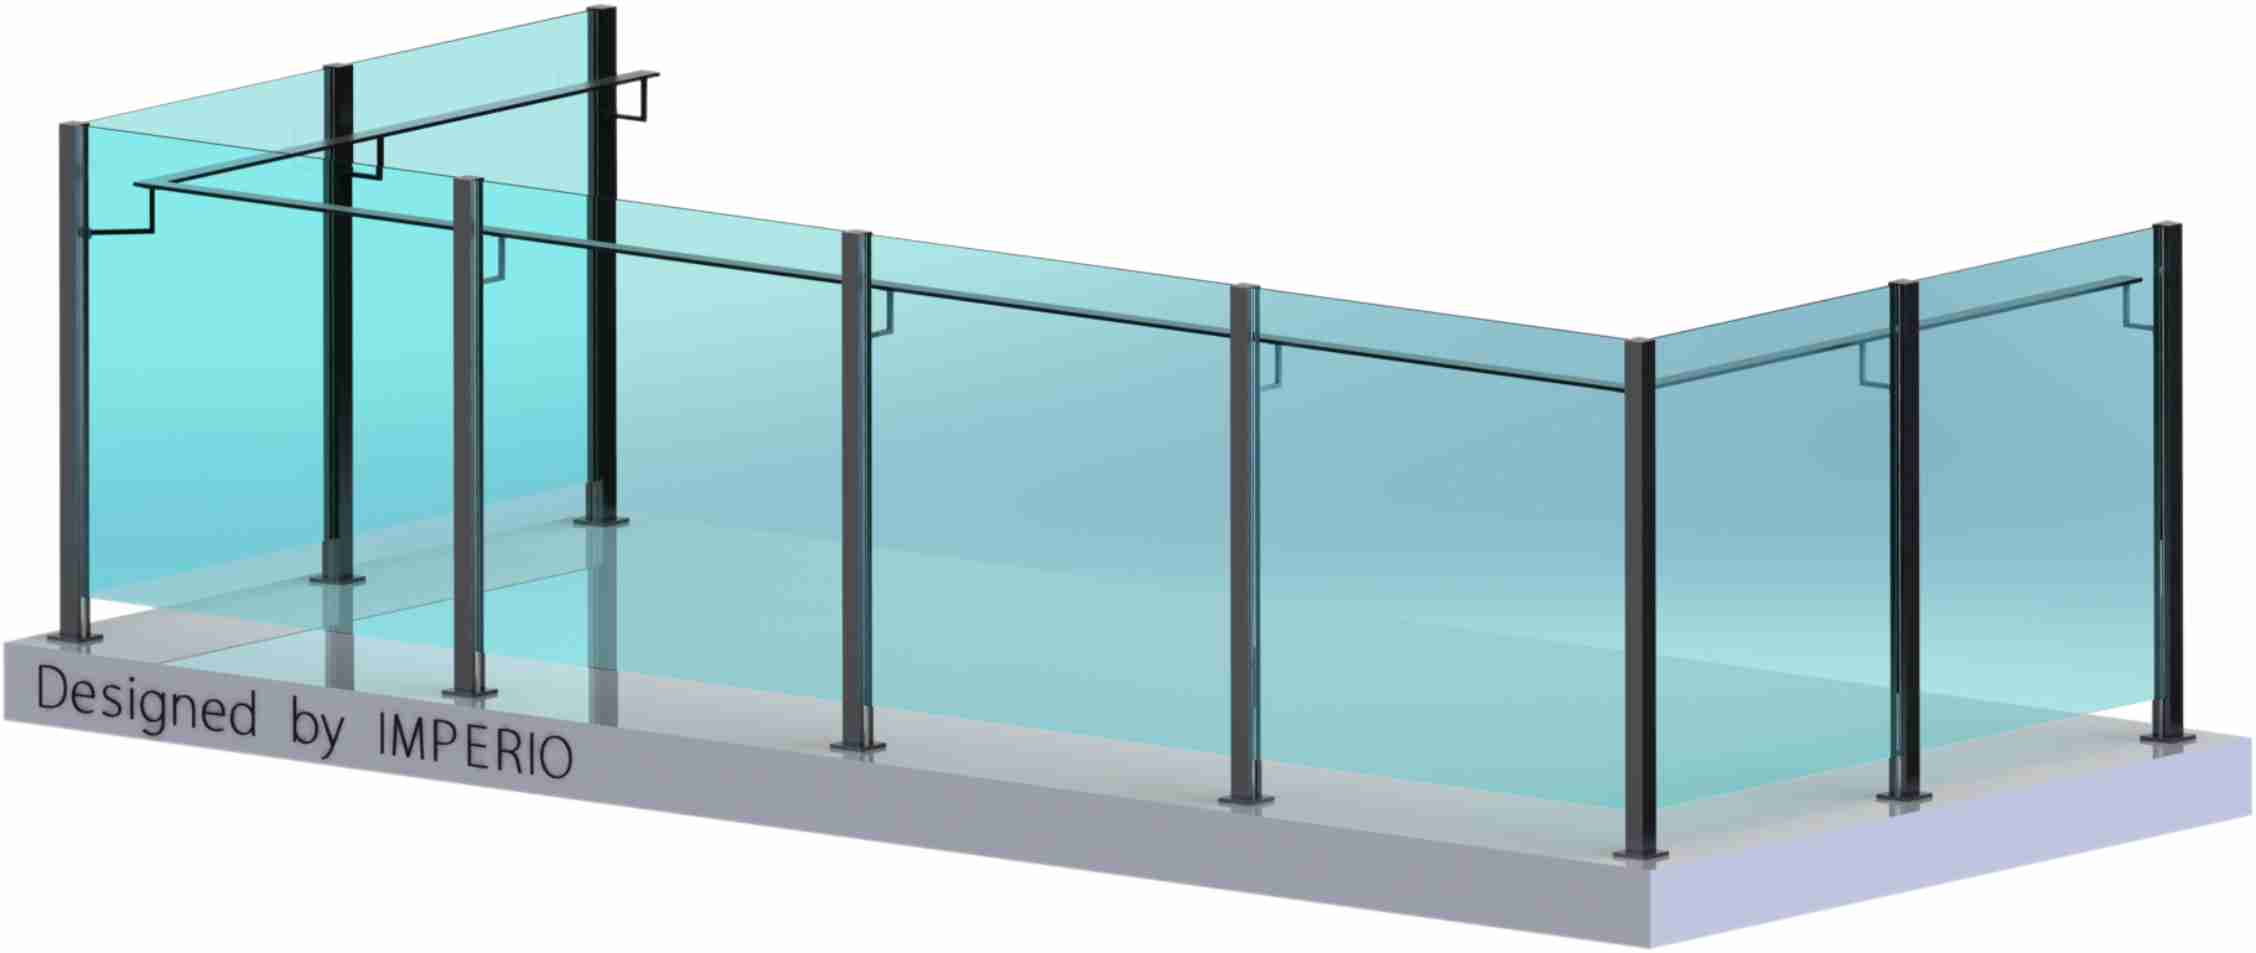 Imperio S Series Frameless Glass Railings